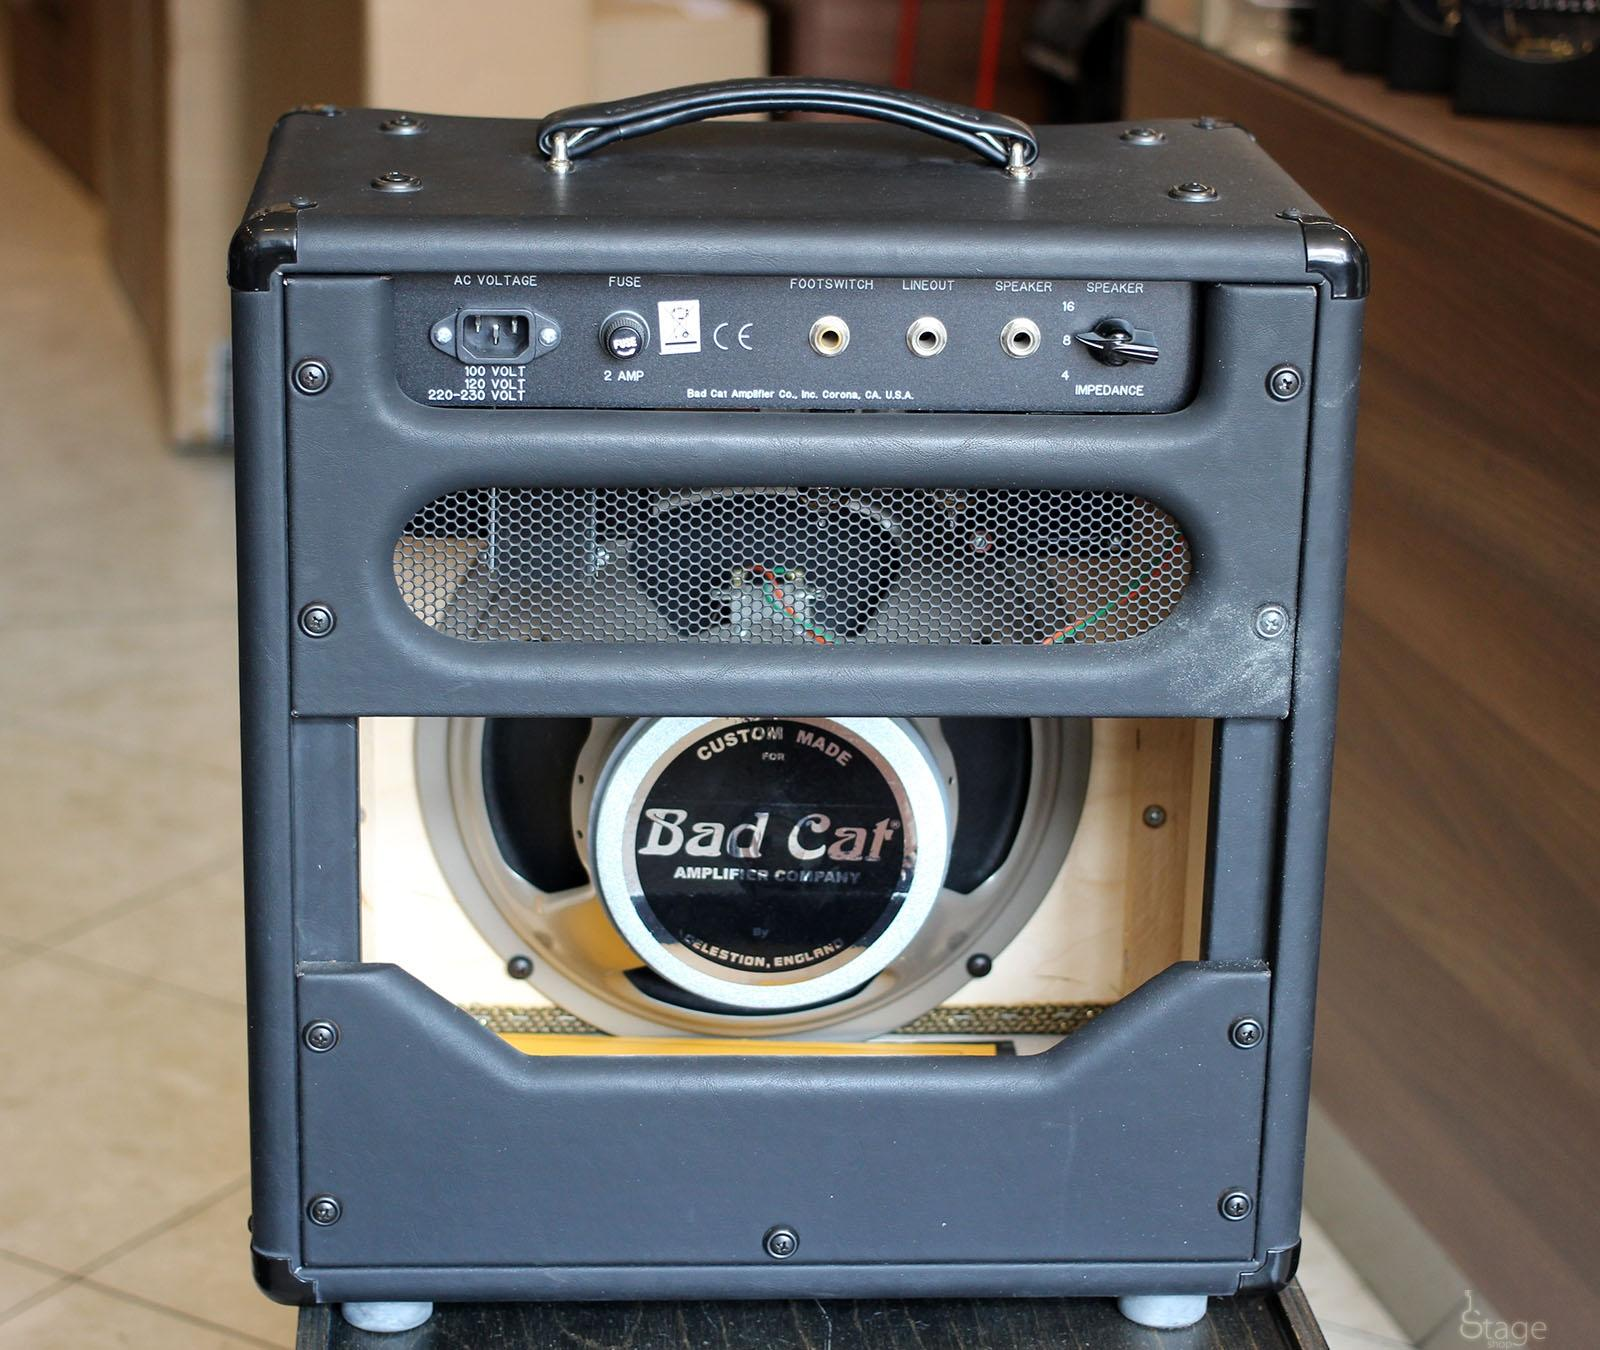 Bad Cat Lil 15 1x12 used guitar tube combo amp | Stageshop